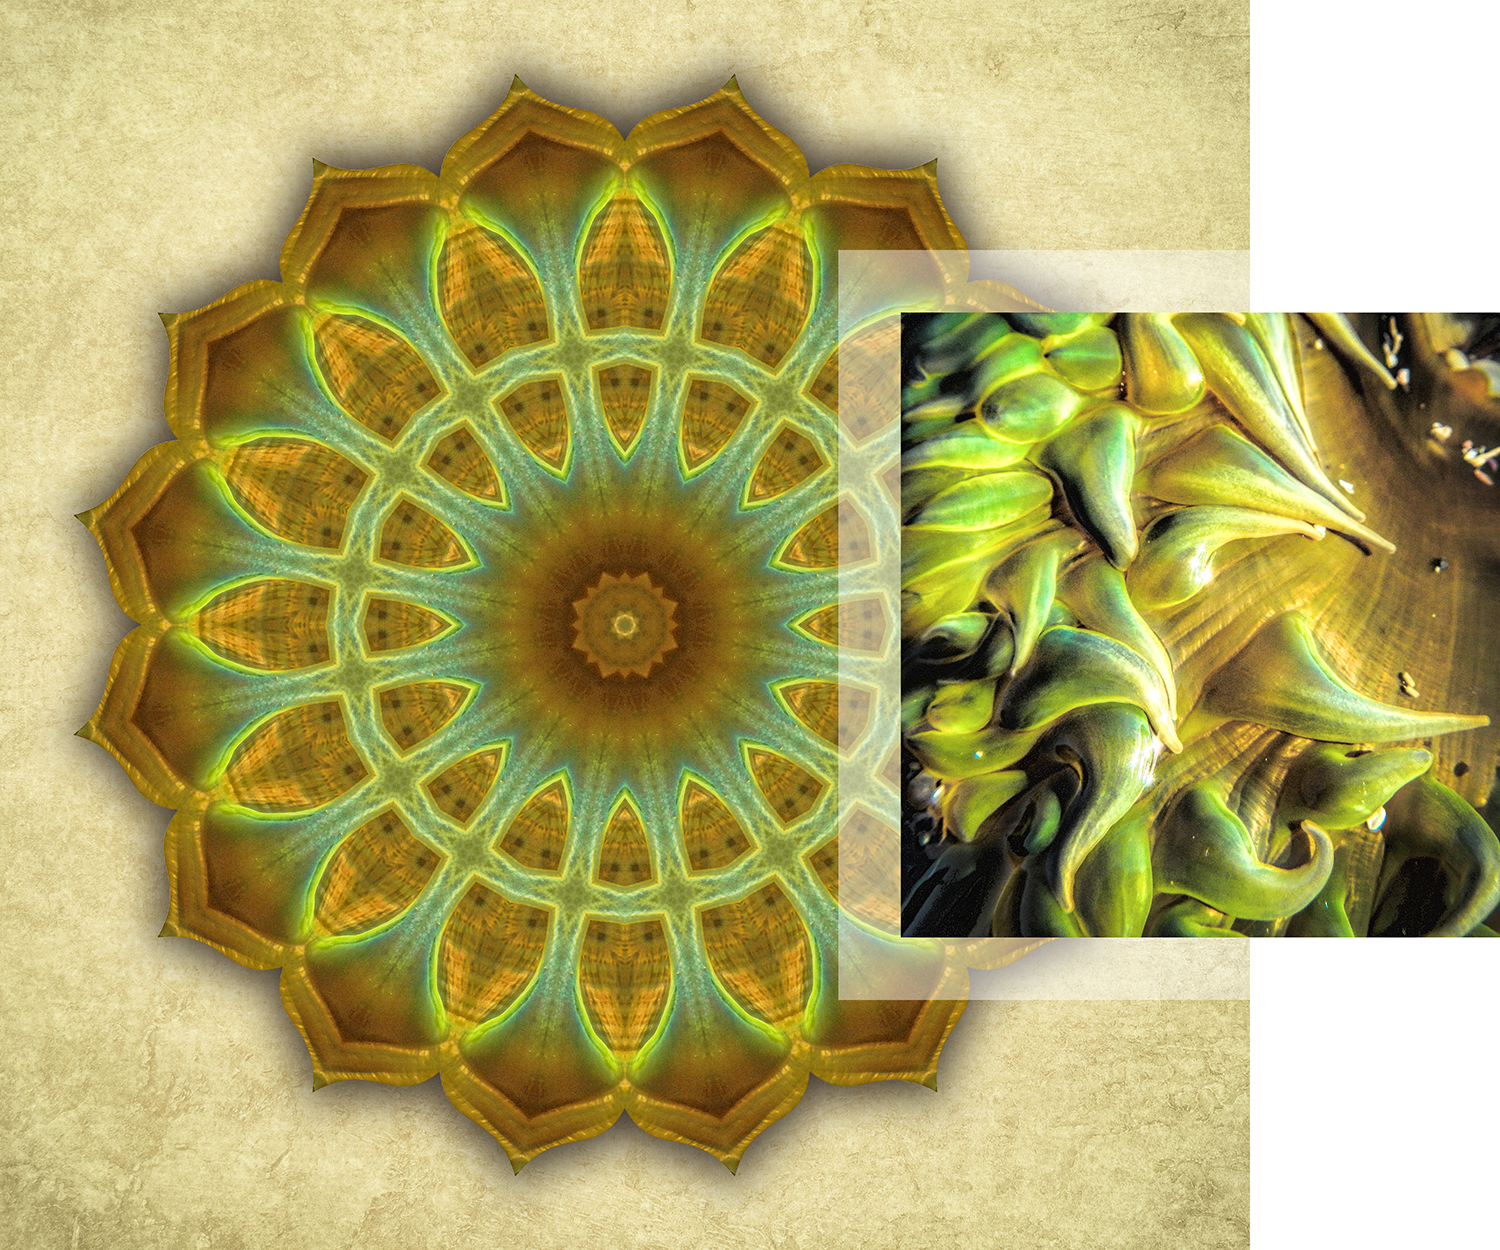 About-Mandalas-Green-and-Amber-Anemone_1500w72r.jpg